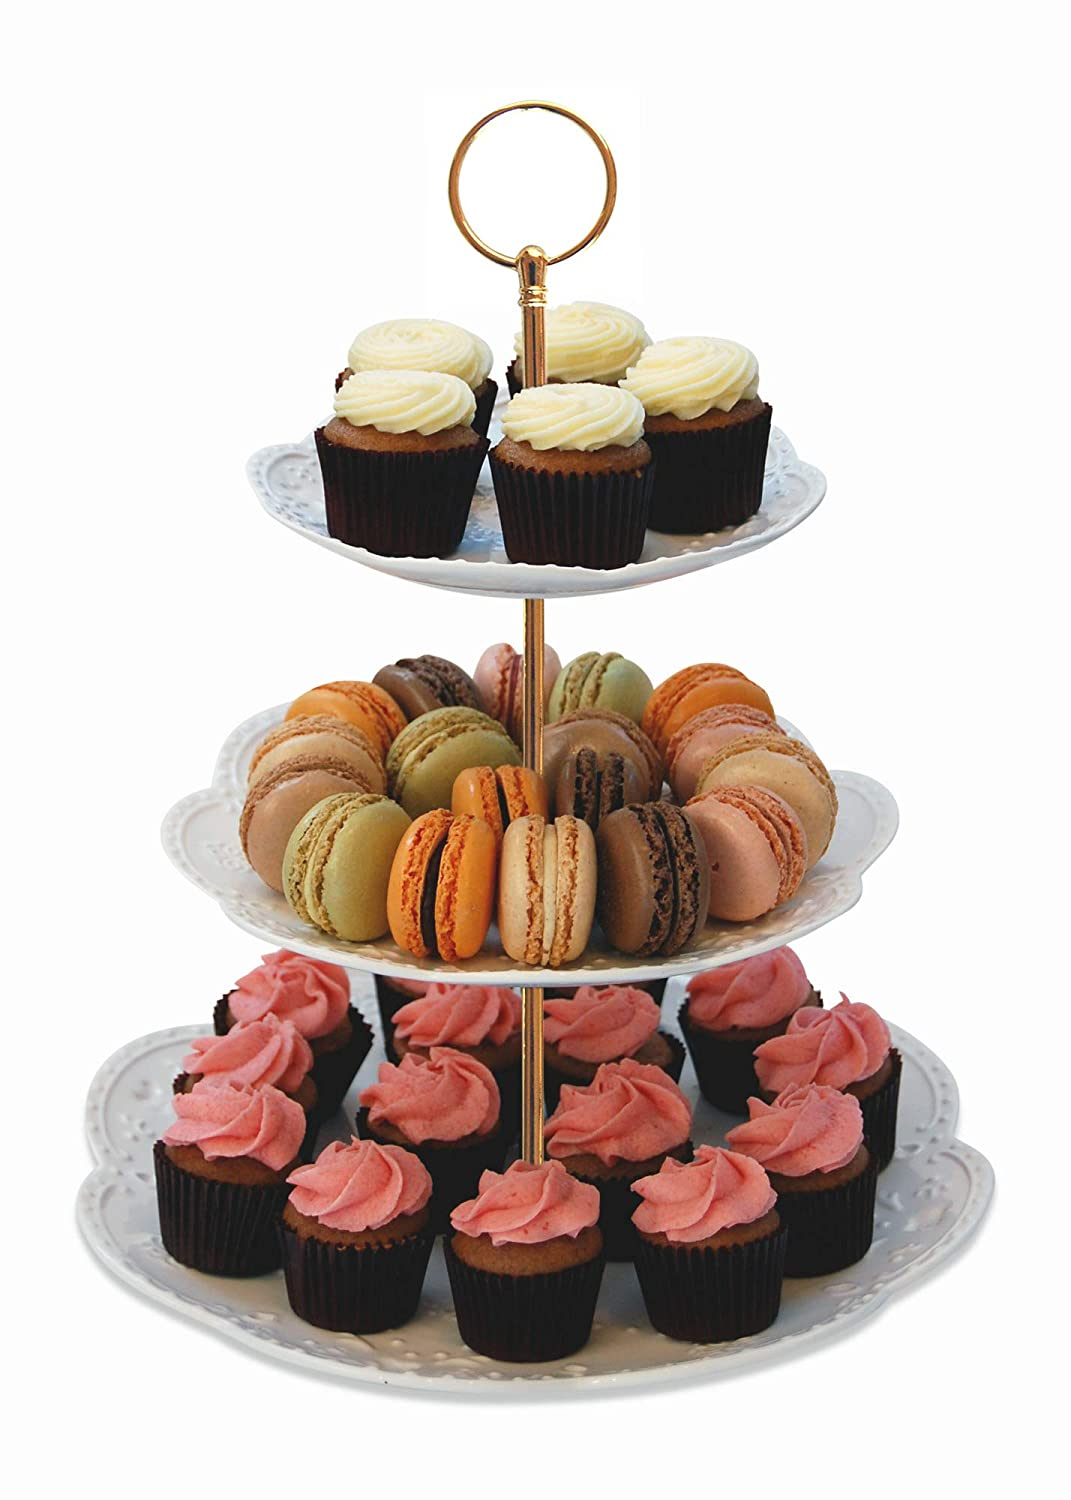 Sophia Interchangeable 2 or 3 Tier Cake Cupcake Dessert Display Stand Serving Platter Includes Silver and Gold Hardware Gold Leaf Confections